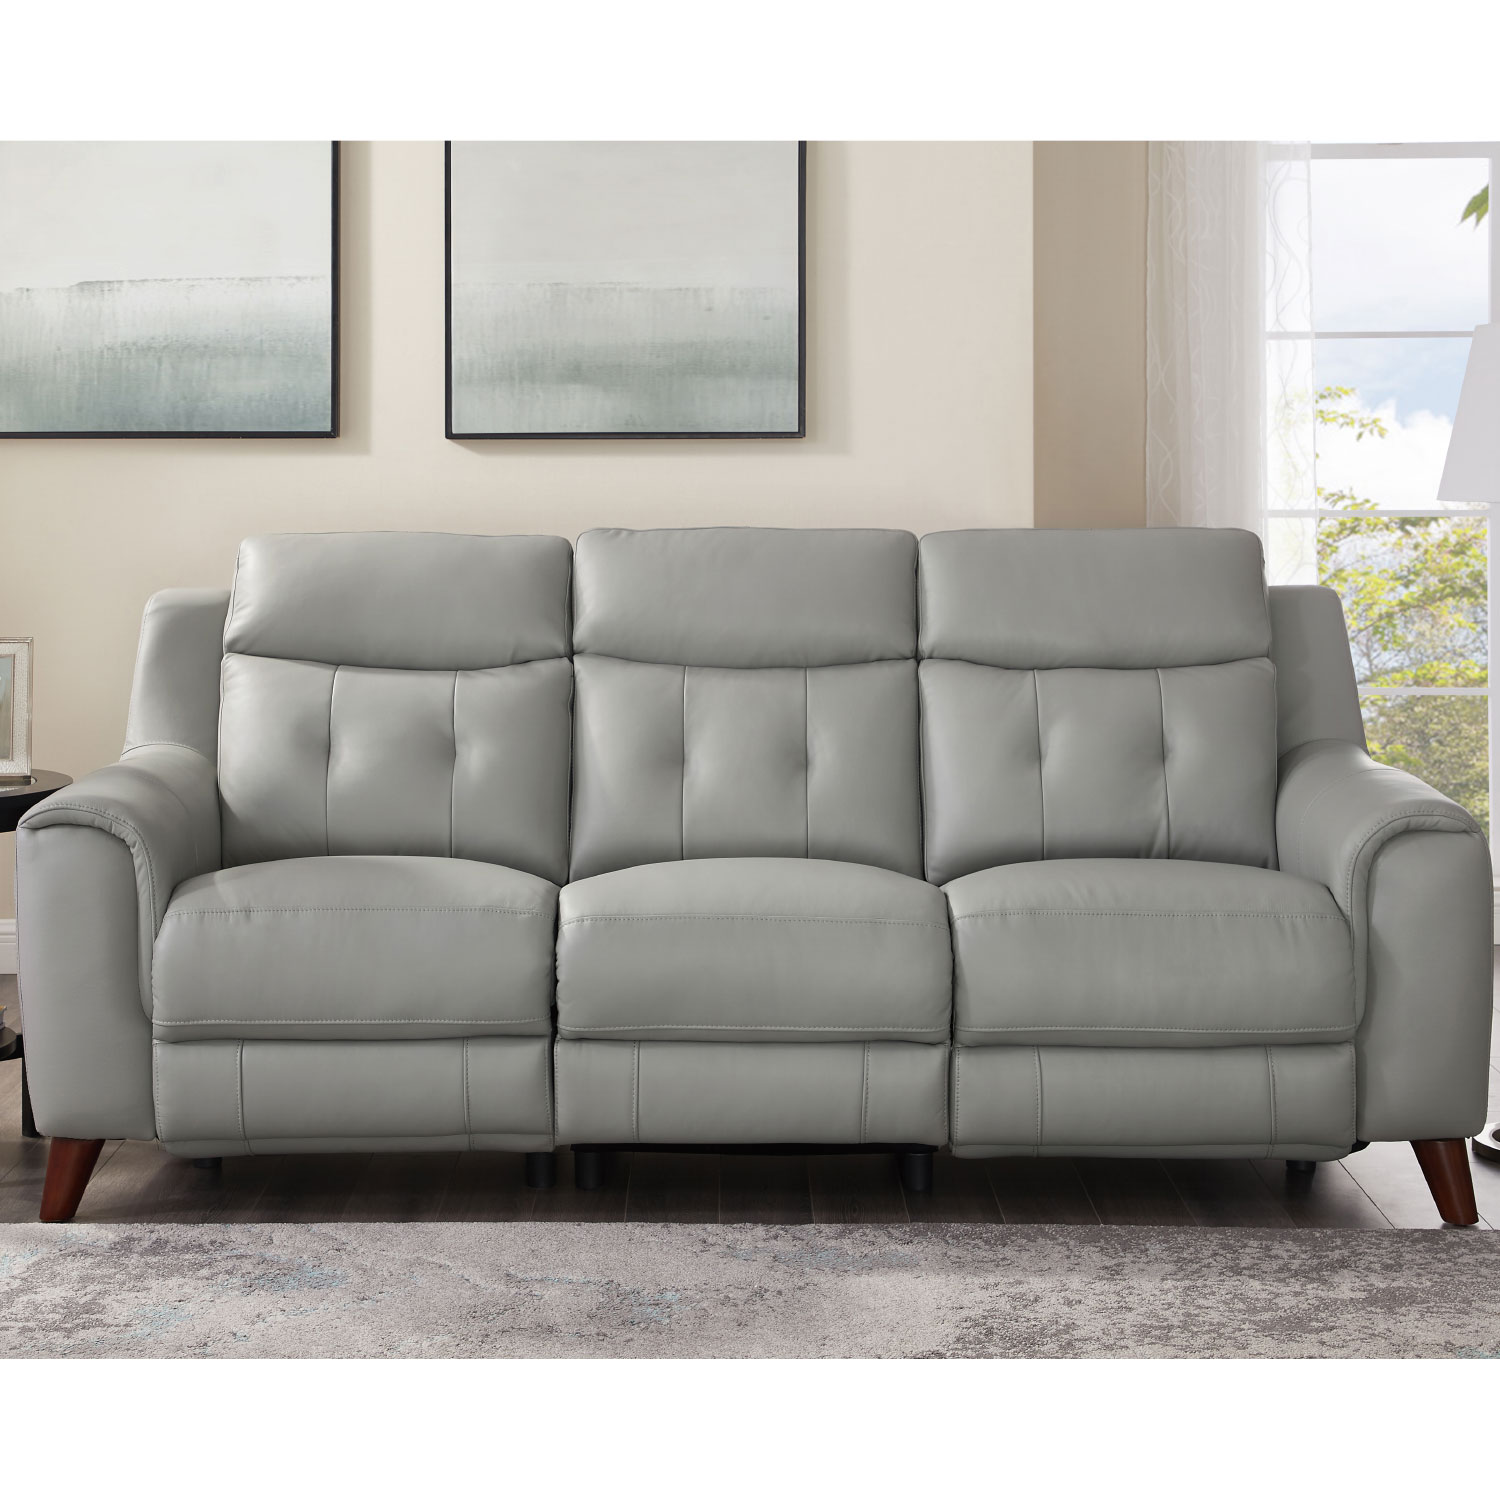 Torino Power Reclining Sofa W Power Headrest Lumbar In Silver Grey Leather By Hydeline Leather